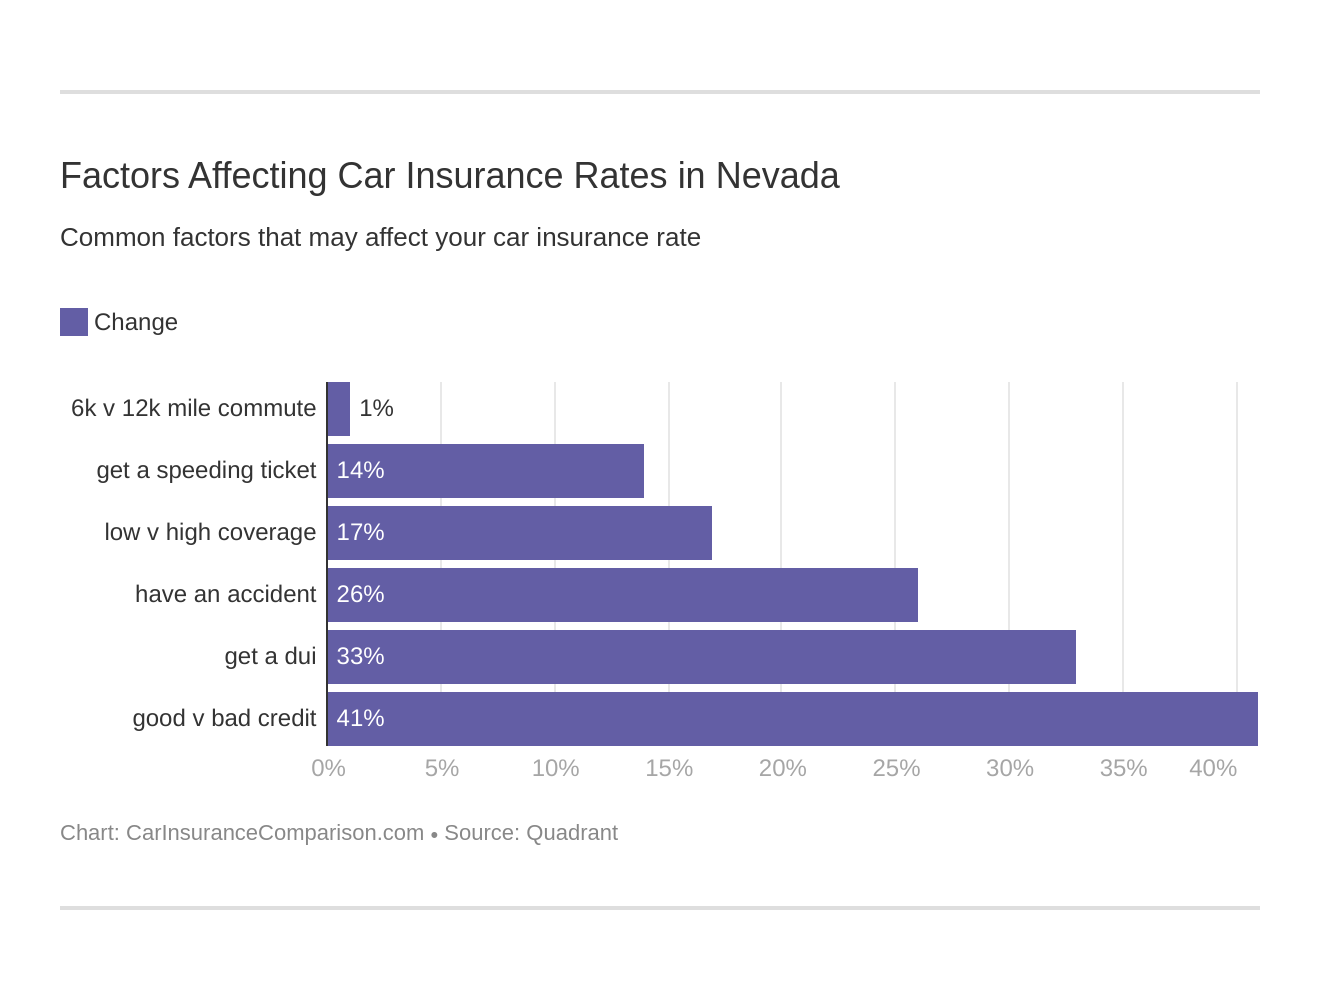 Factors Affecting Car Insurance Rates in Nevada